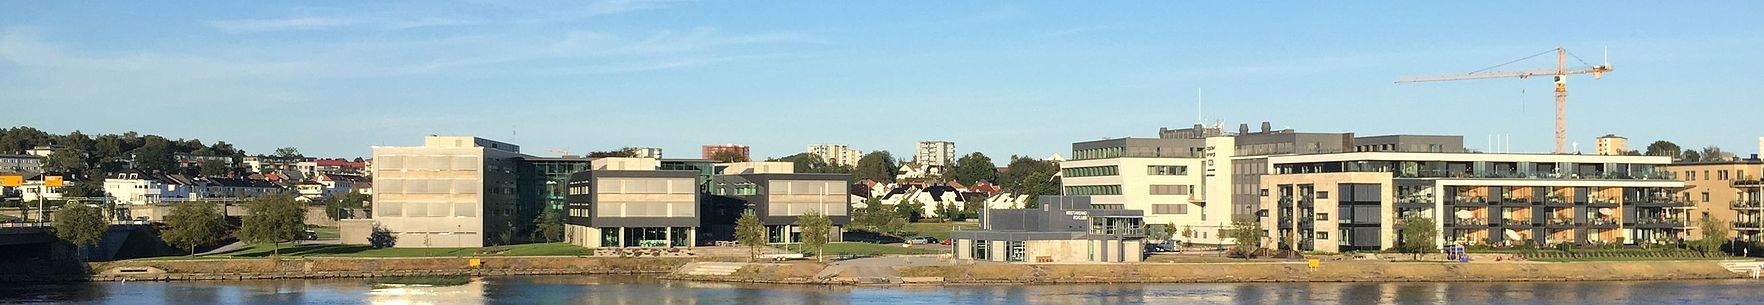 Kjoita Park with Telenor main offices for Southern Norway to the left and Kristiansand Roklubb in the center and apartments to the right Kjoita-panorama.jpg